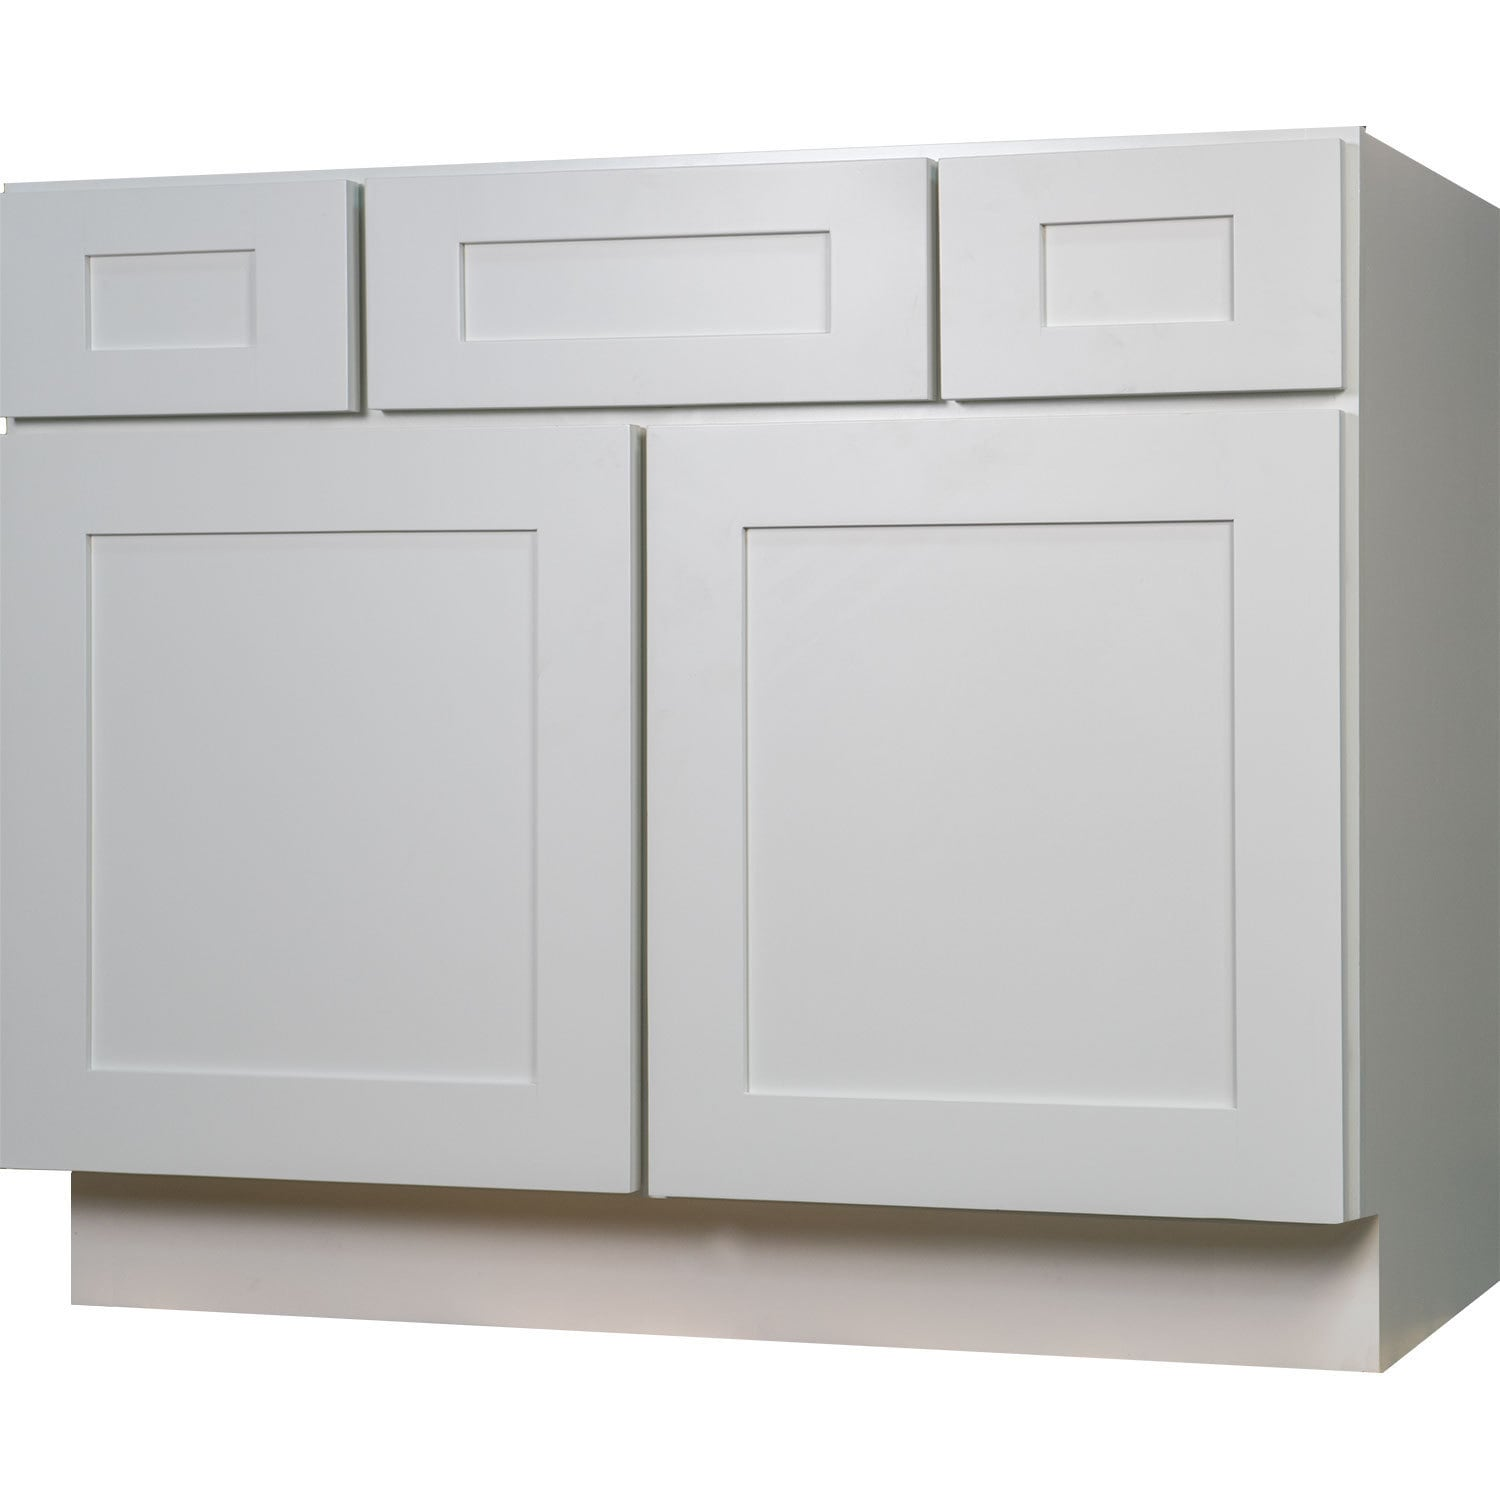 Shop Everyday Cabinets Shaker 42-inch White Wood Single Sink ...